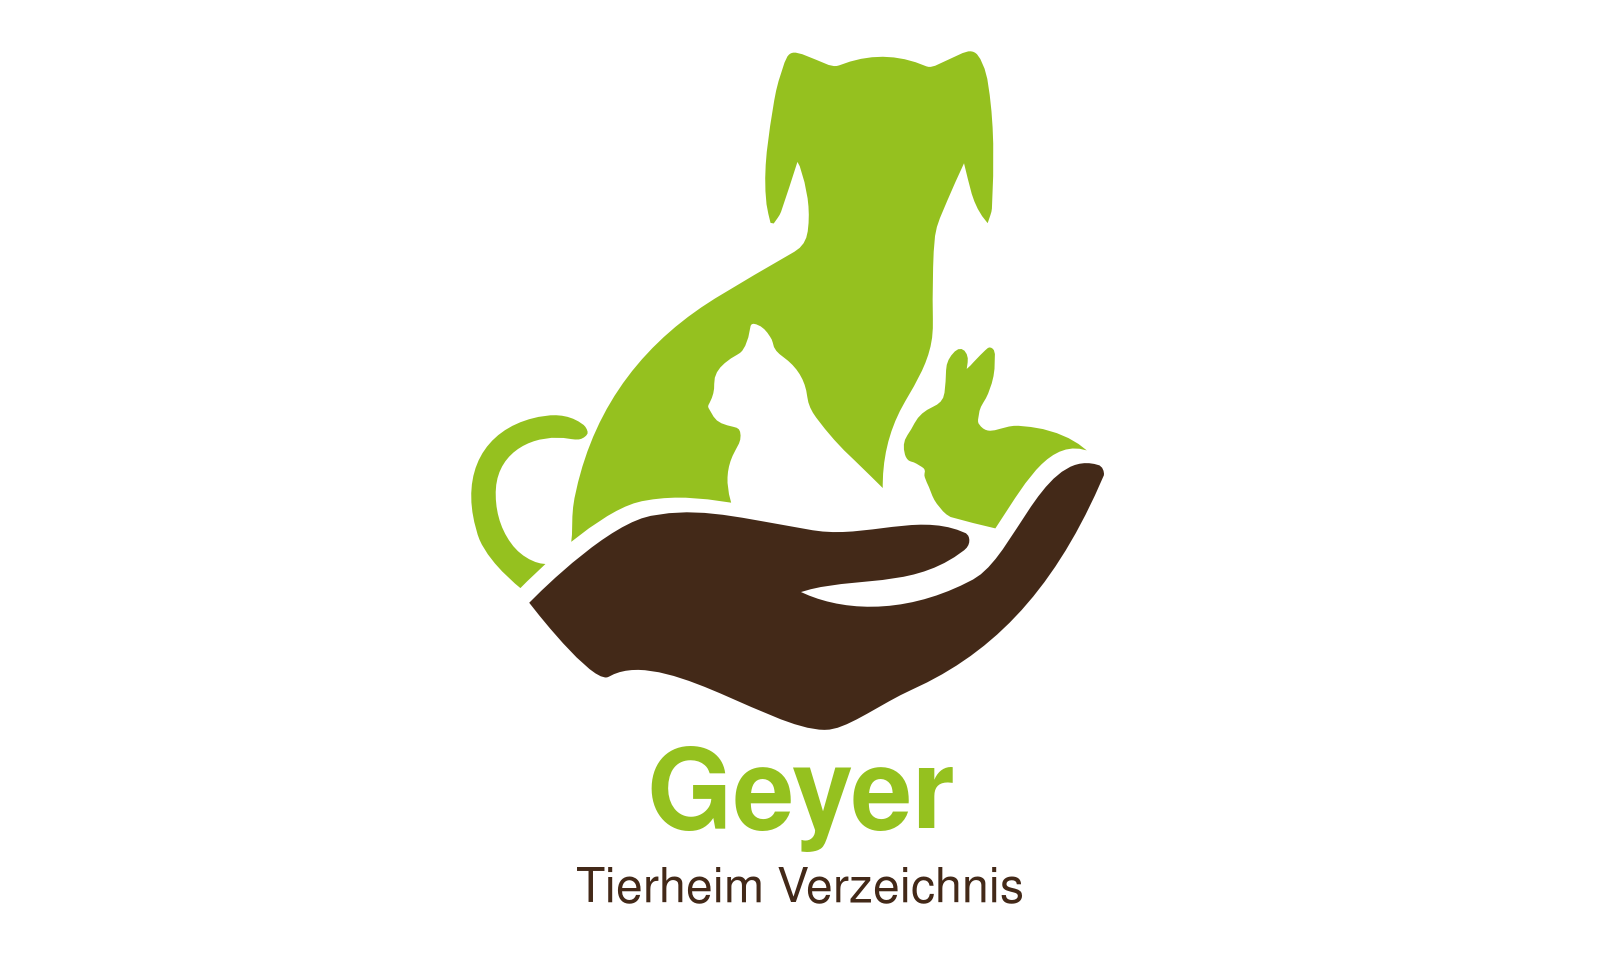 Tierheim Geyer